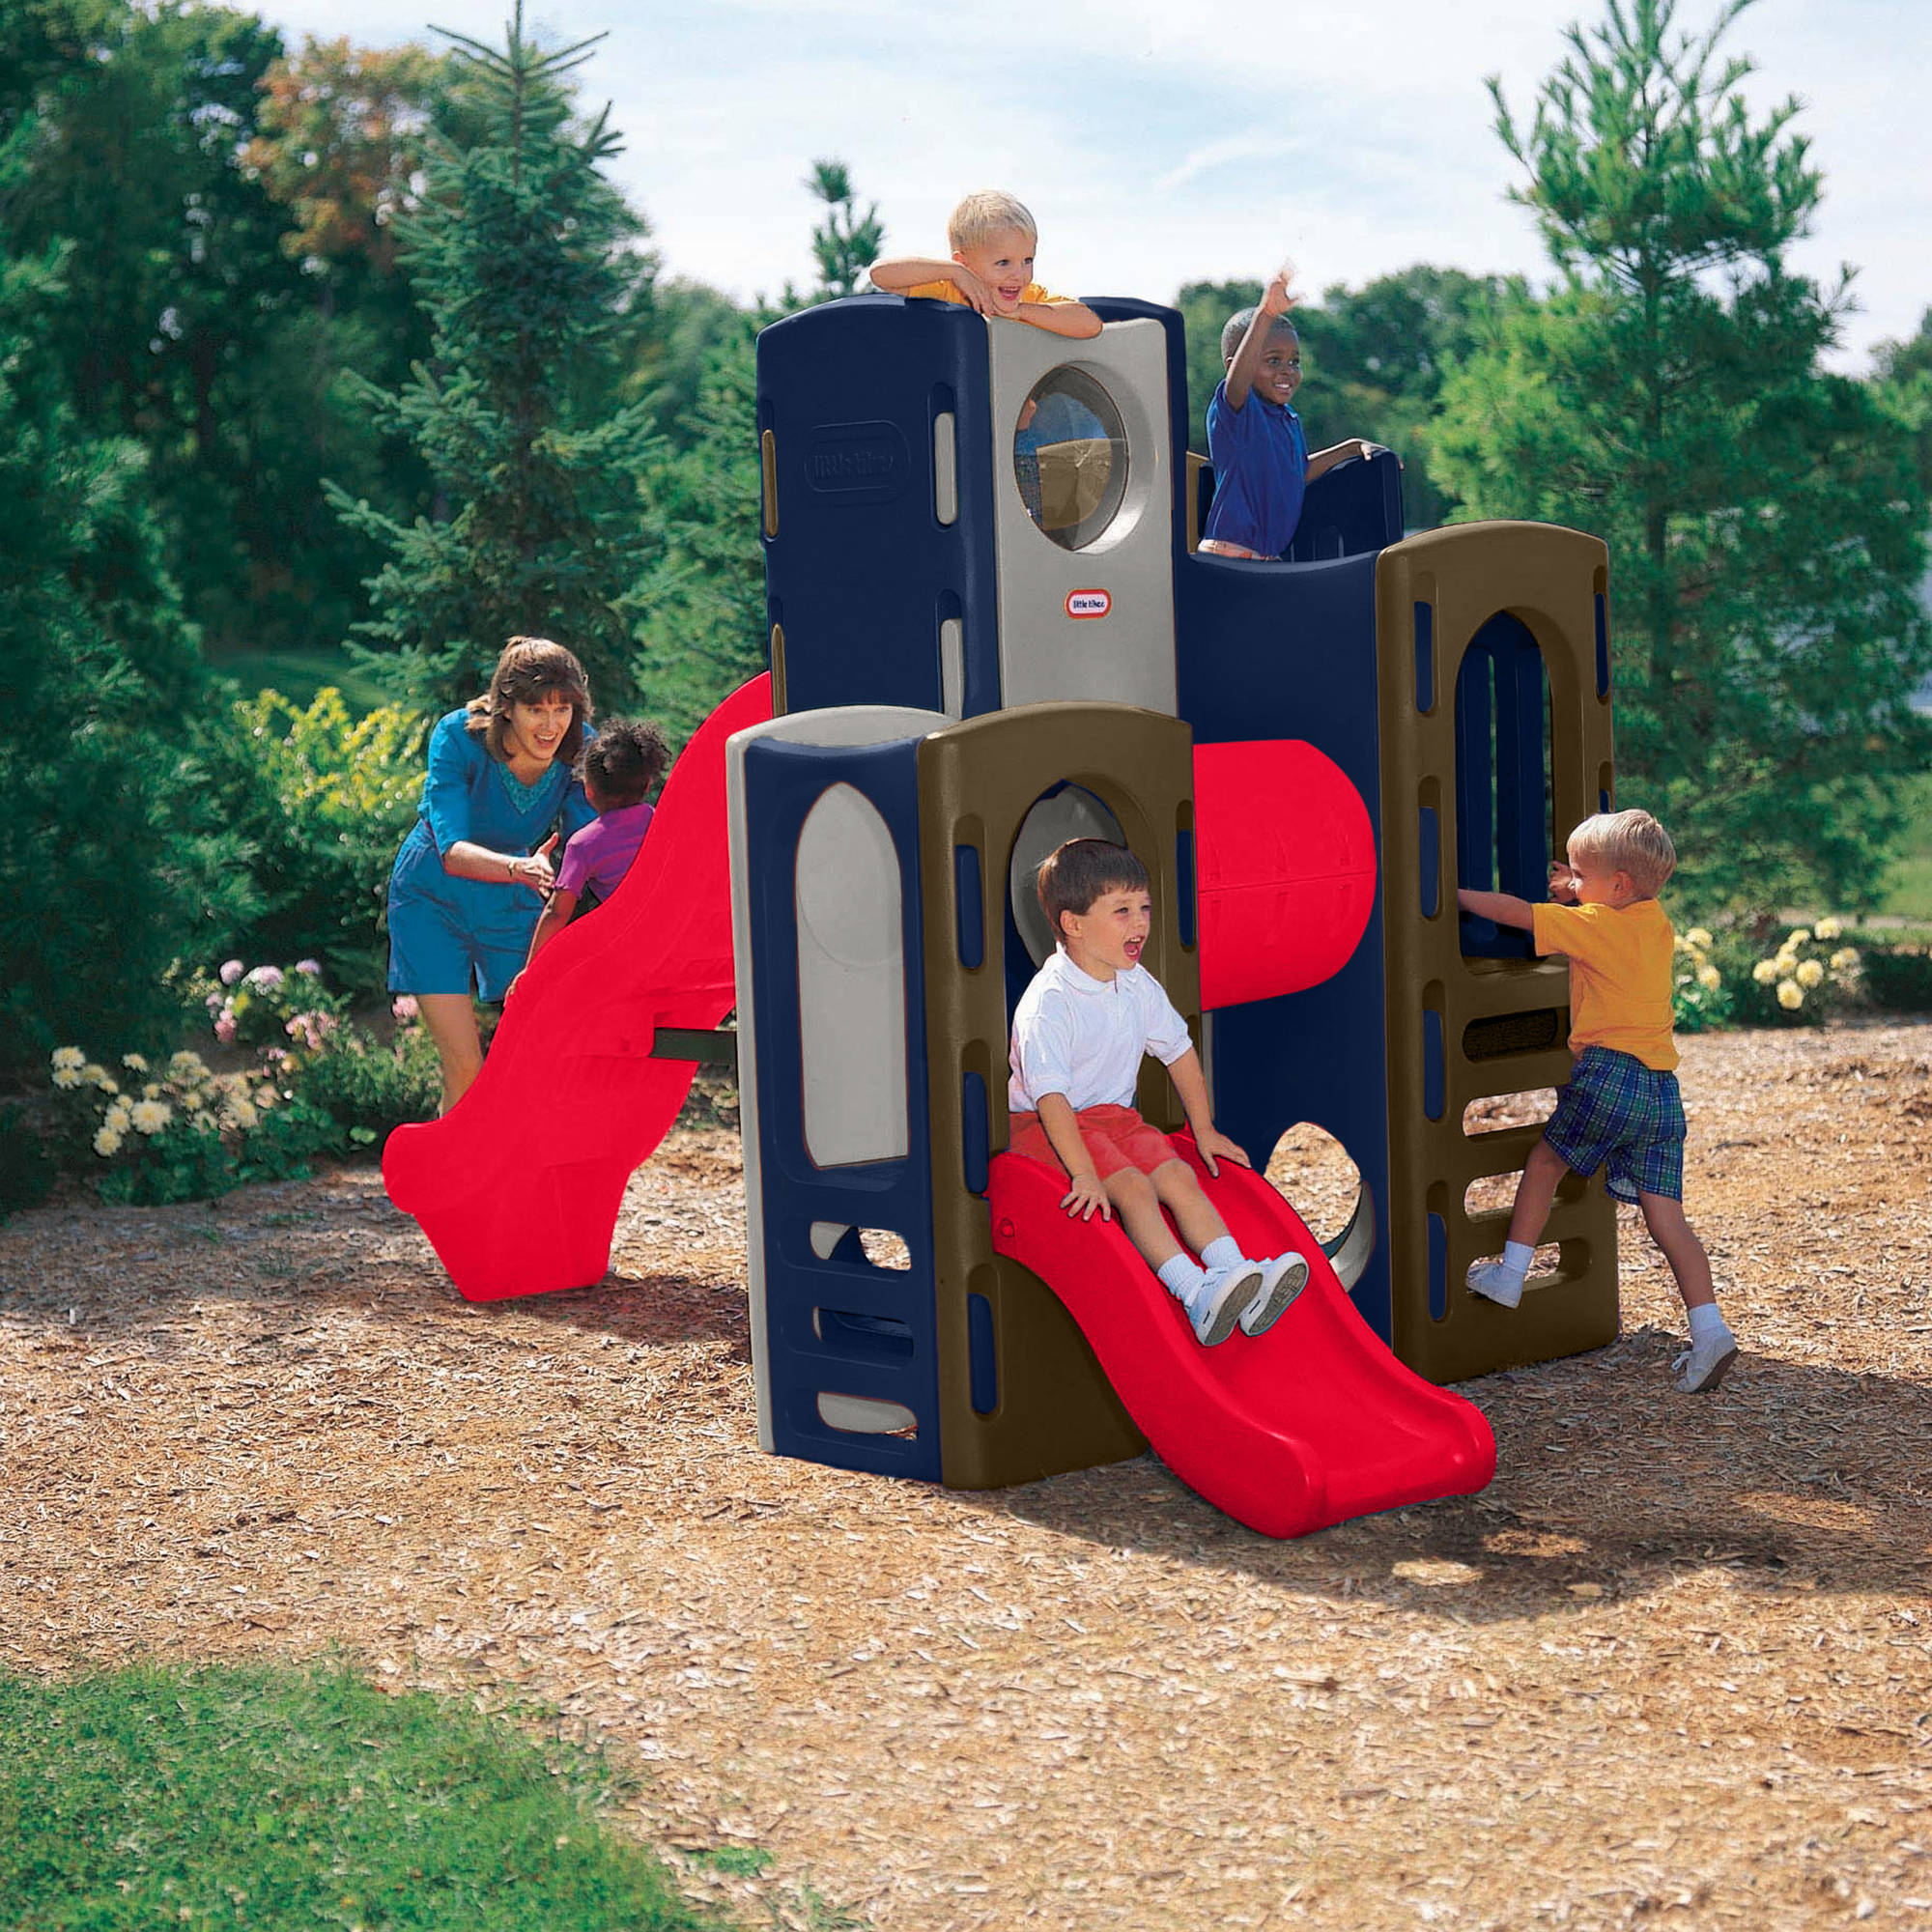 Little Tikes Slide Outdoor Playhouse Playground Backyard Large Tyke For Kid